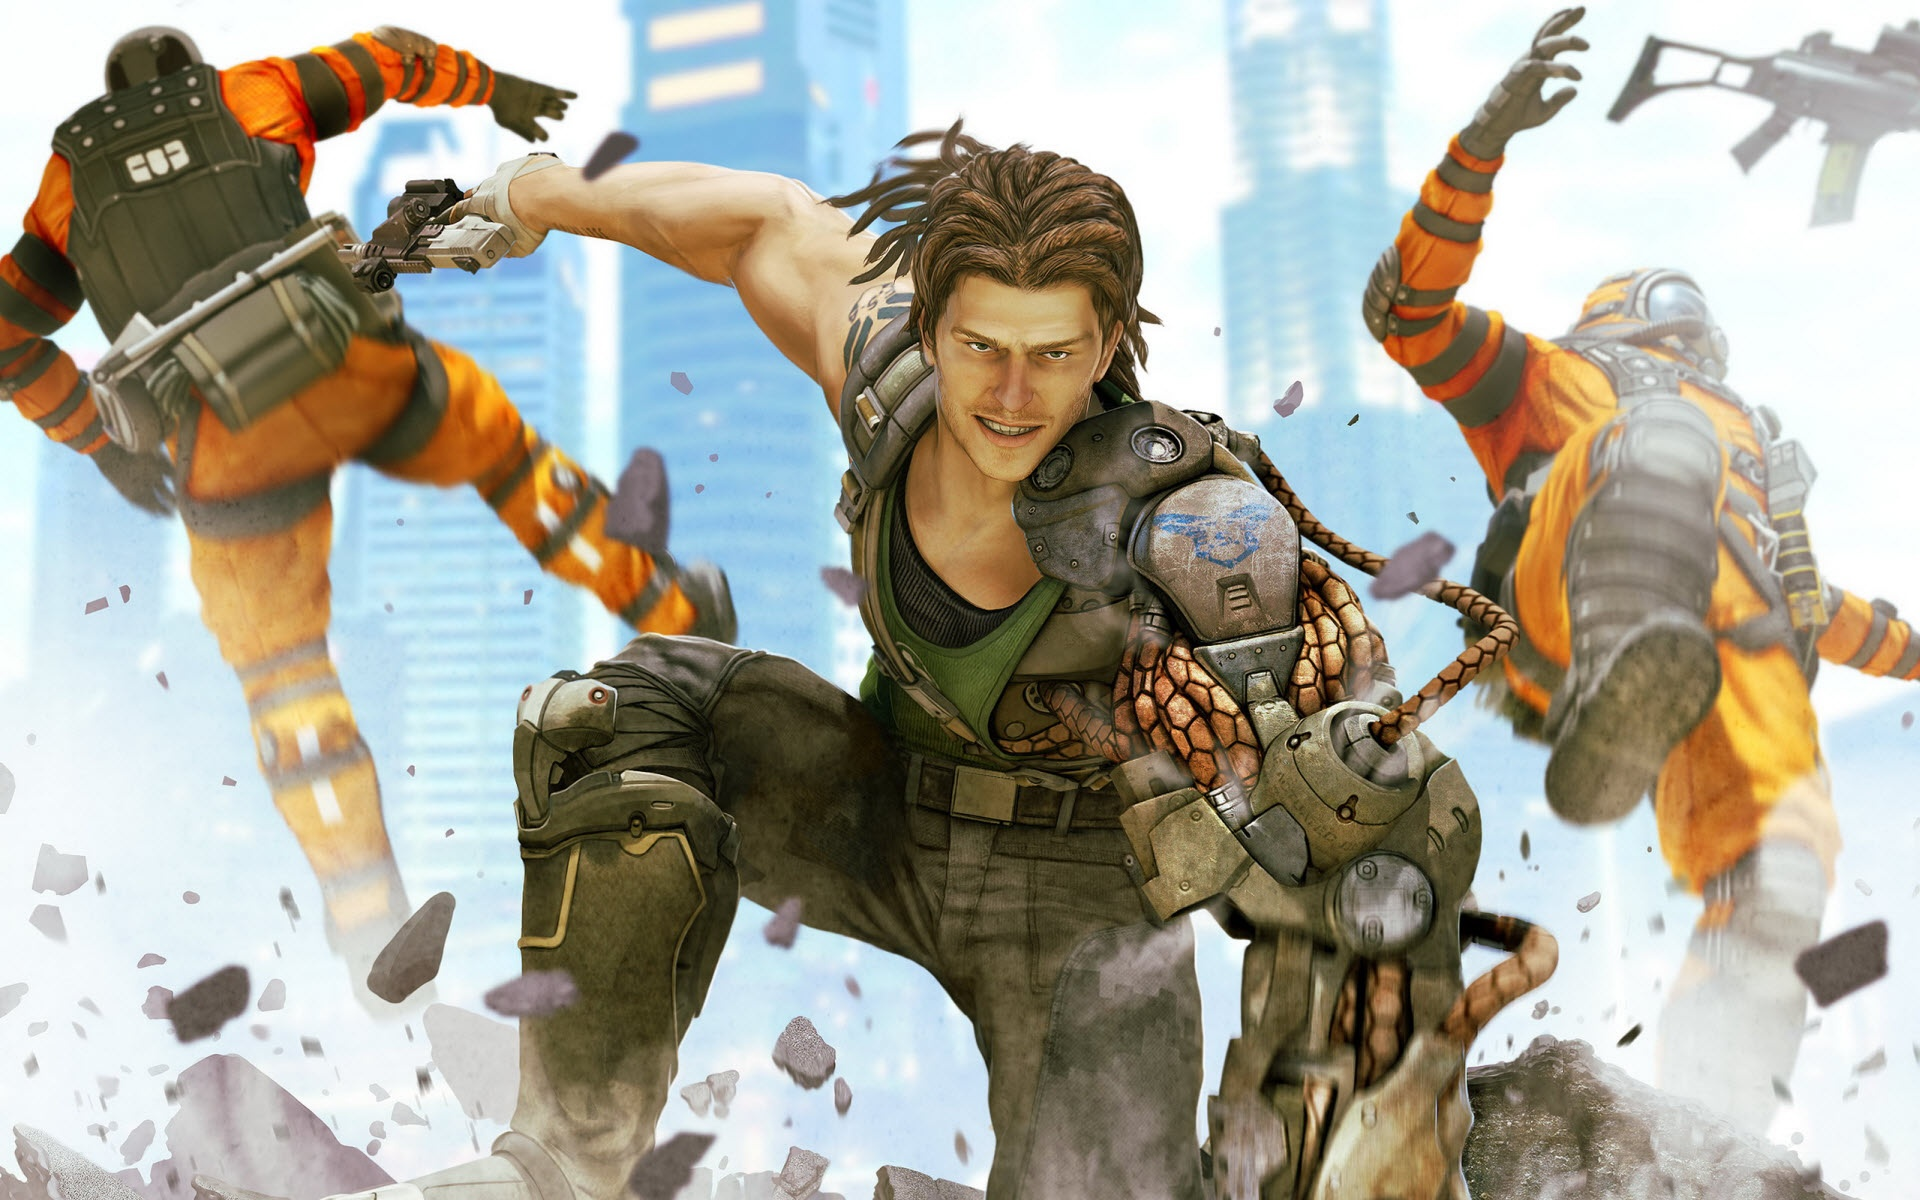 Commando 2 Wallpaper: Bionic Commando 2 #4192669, 1920x1200